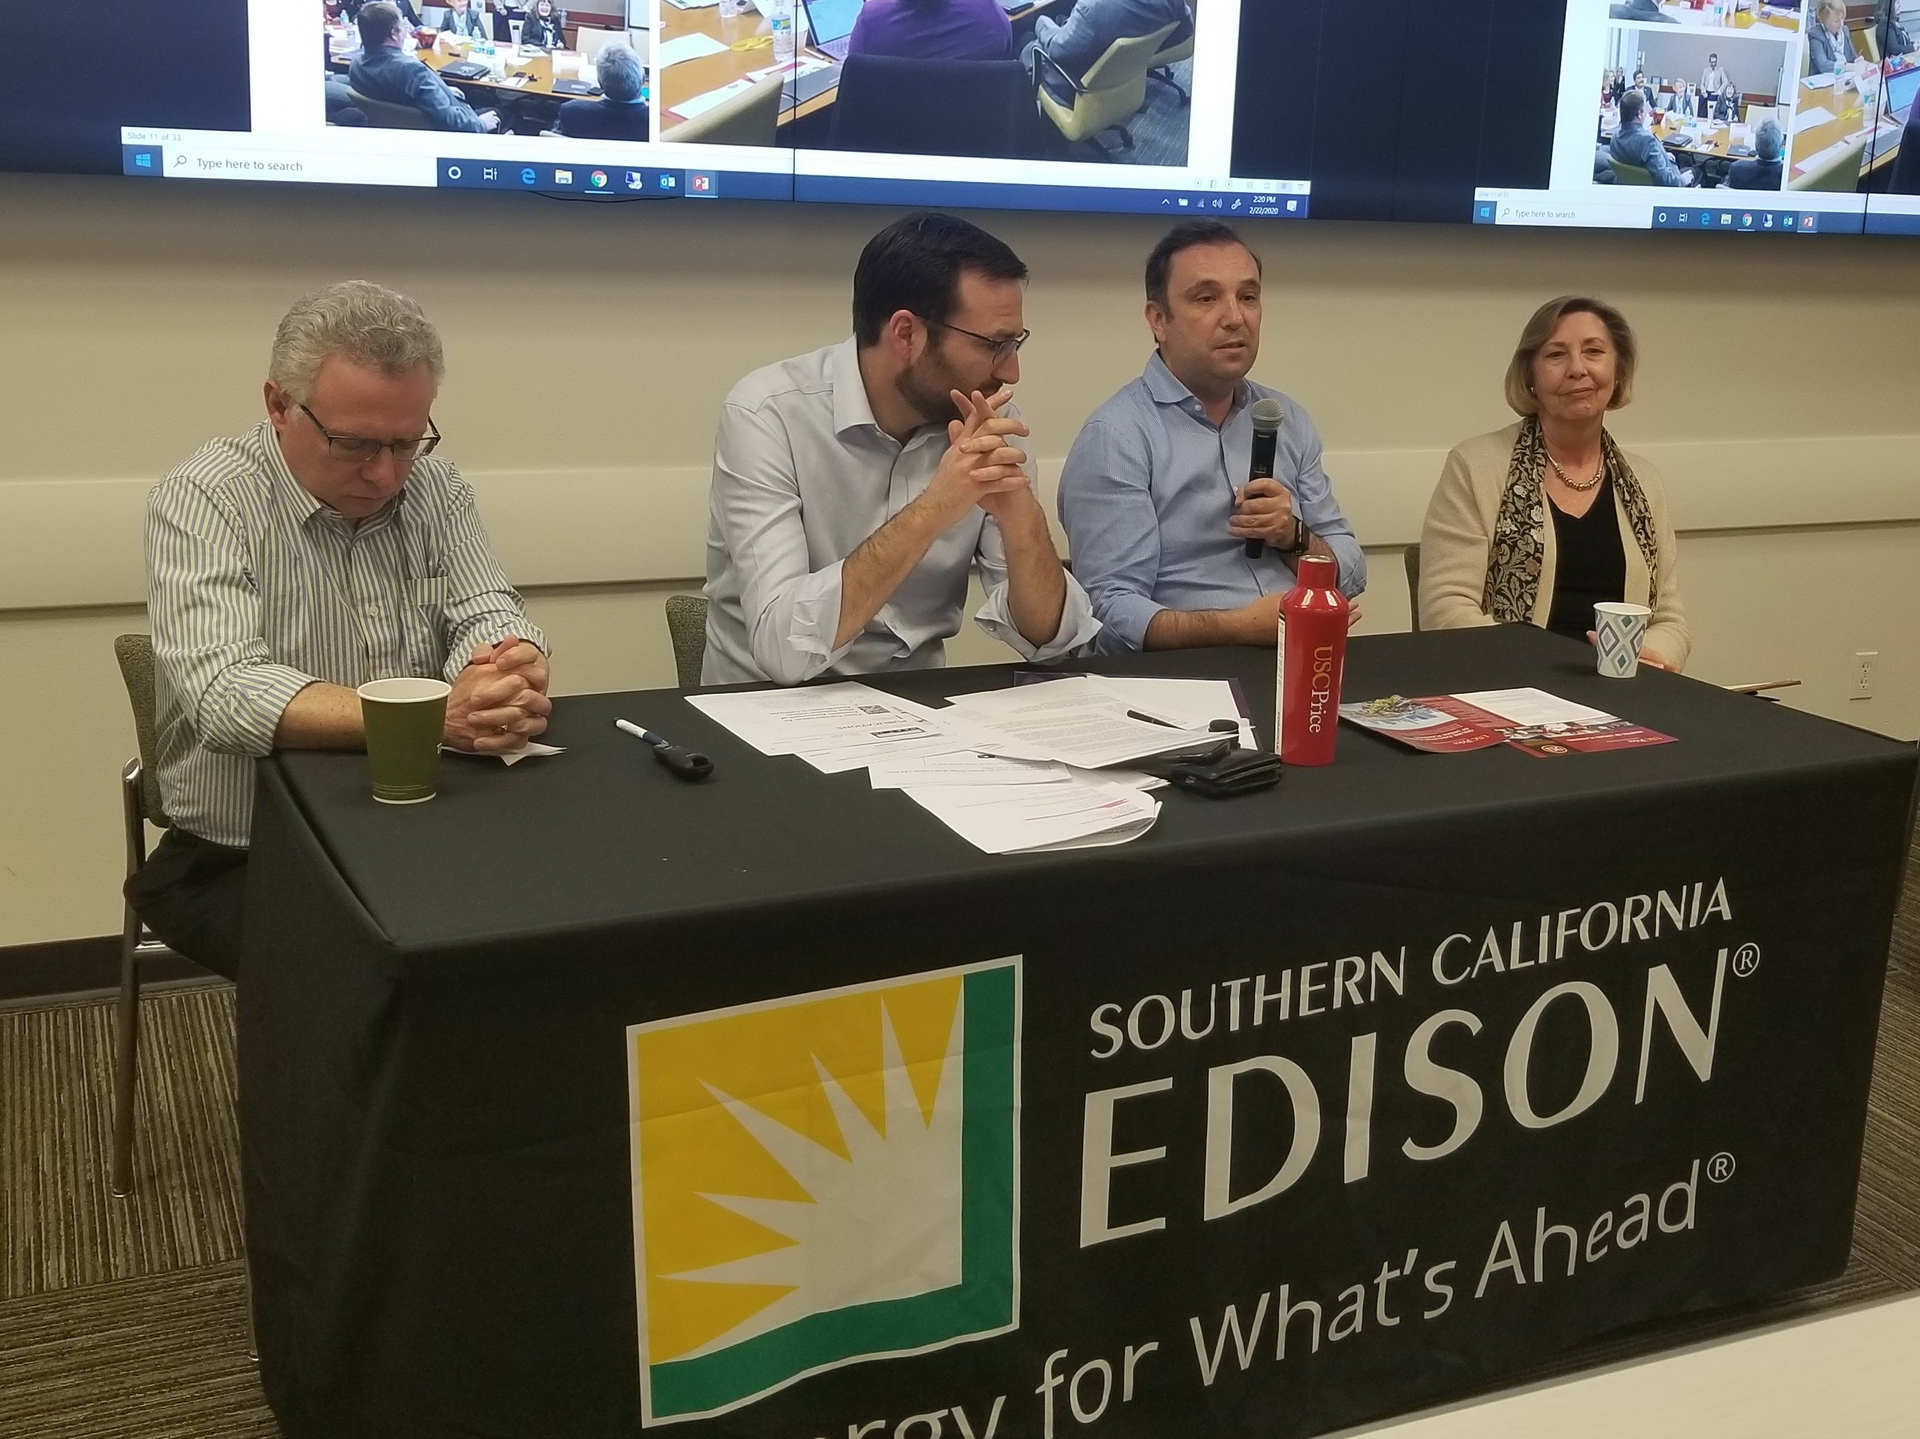 The Sustainability Summit speakers addressed issues including environmental economics, clmate adaptation, sustainability in transportation and urban planning. Pictured (l-r) are: USC Professor Marlon Boarnet; state Sen. Ben Allen; USC Professor Antonio Bento; and Judy Mitchell, councilmember for the city of Rolling Hills Estates and board member for the California Air Resources Board and South Coast Air Quality Management District.